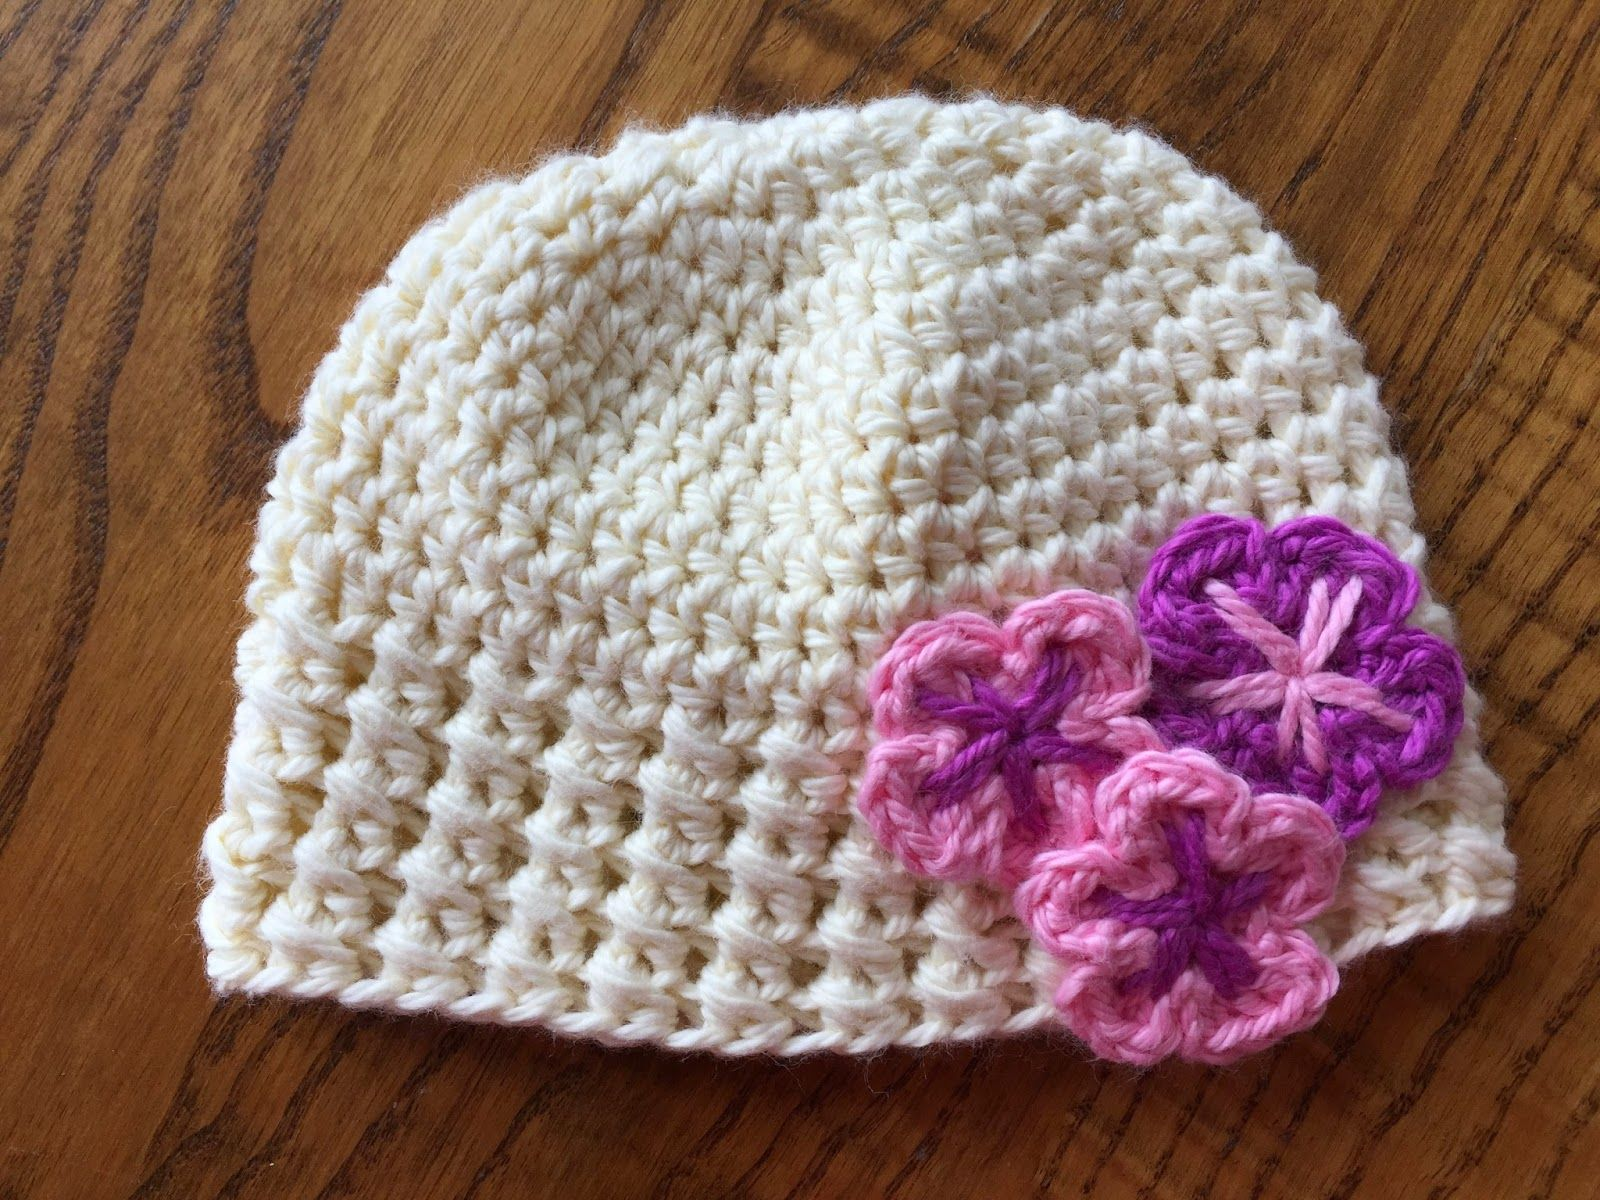 Even though it is still winter where I live, I am ready for spring. I have been thinking about all the things that I can make with crochet...